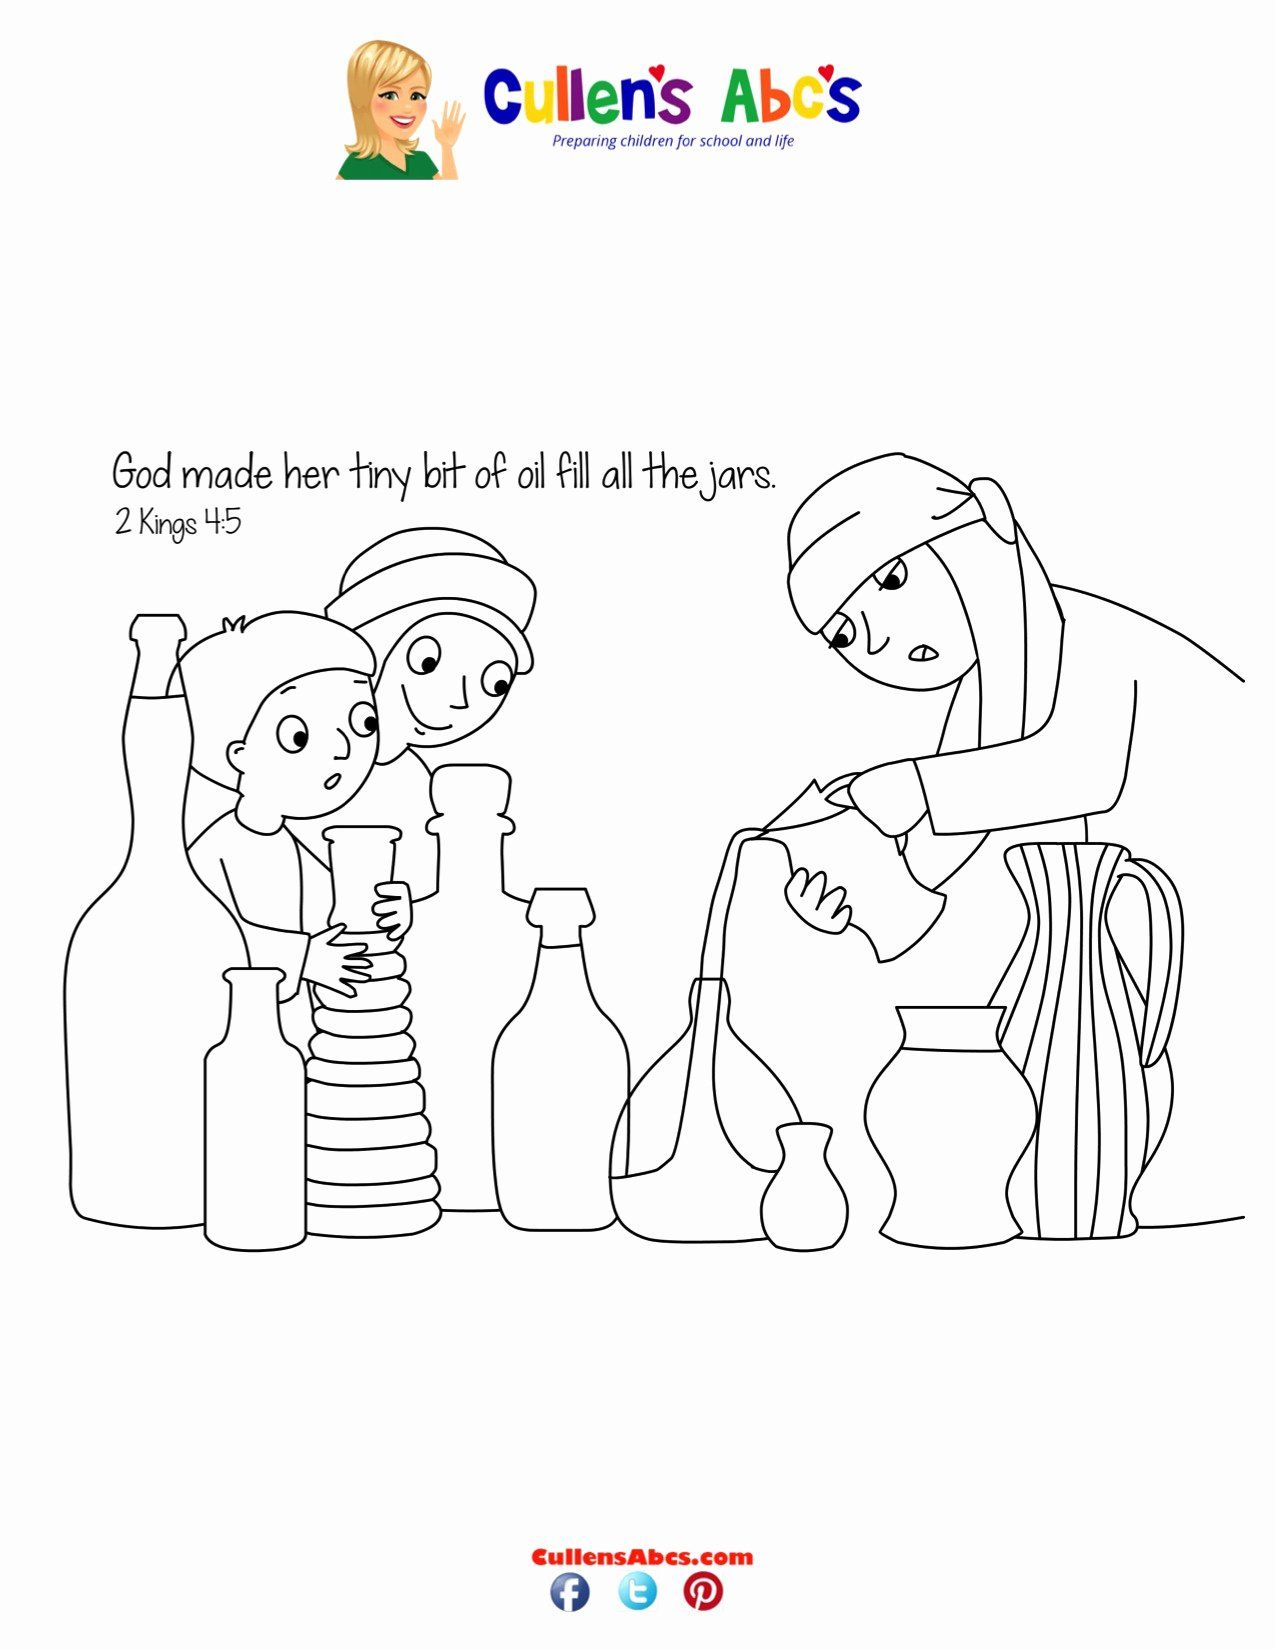 Elijah And The Widow Coloring Page Inspirational Elijah And The Widow S Oil Coloring Page Elijah And The Widow Coloring Pages Inspirational Coloring Pages